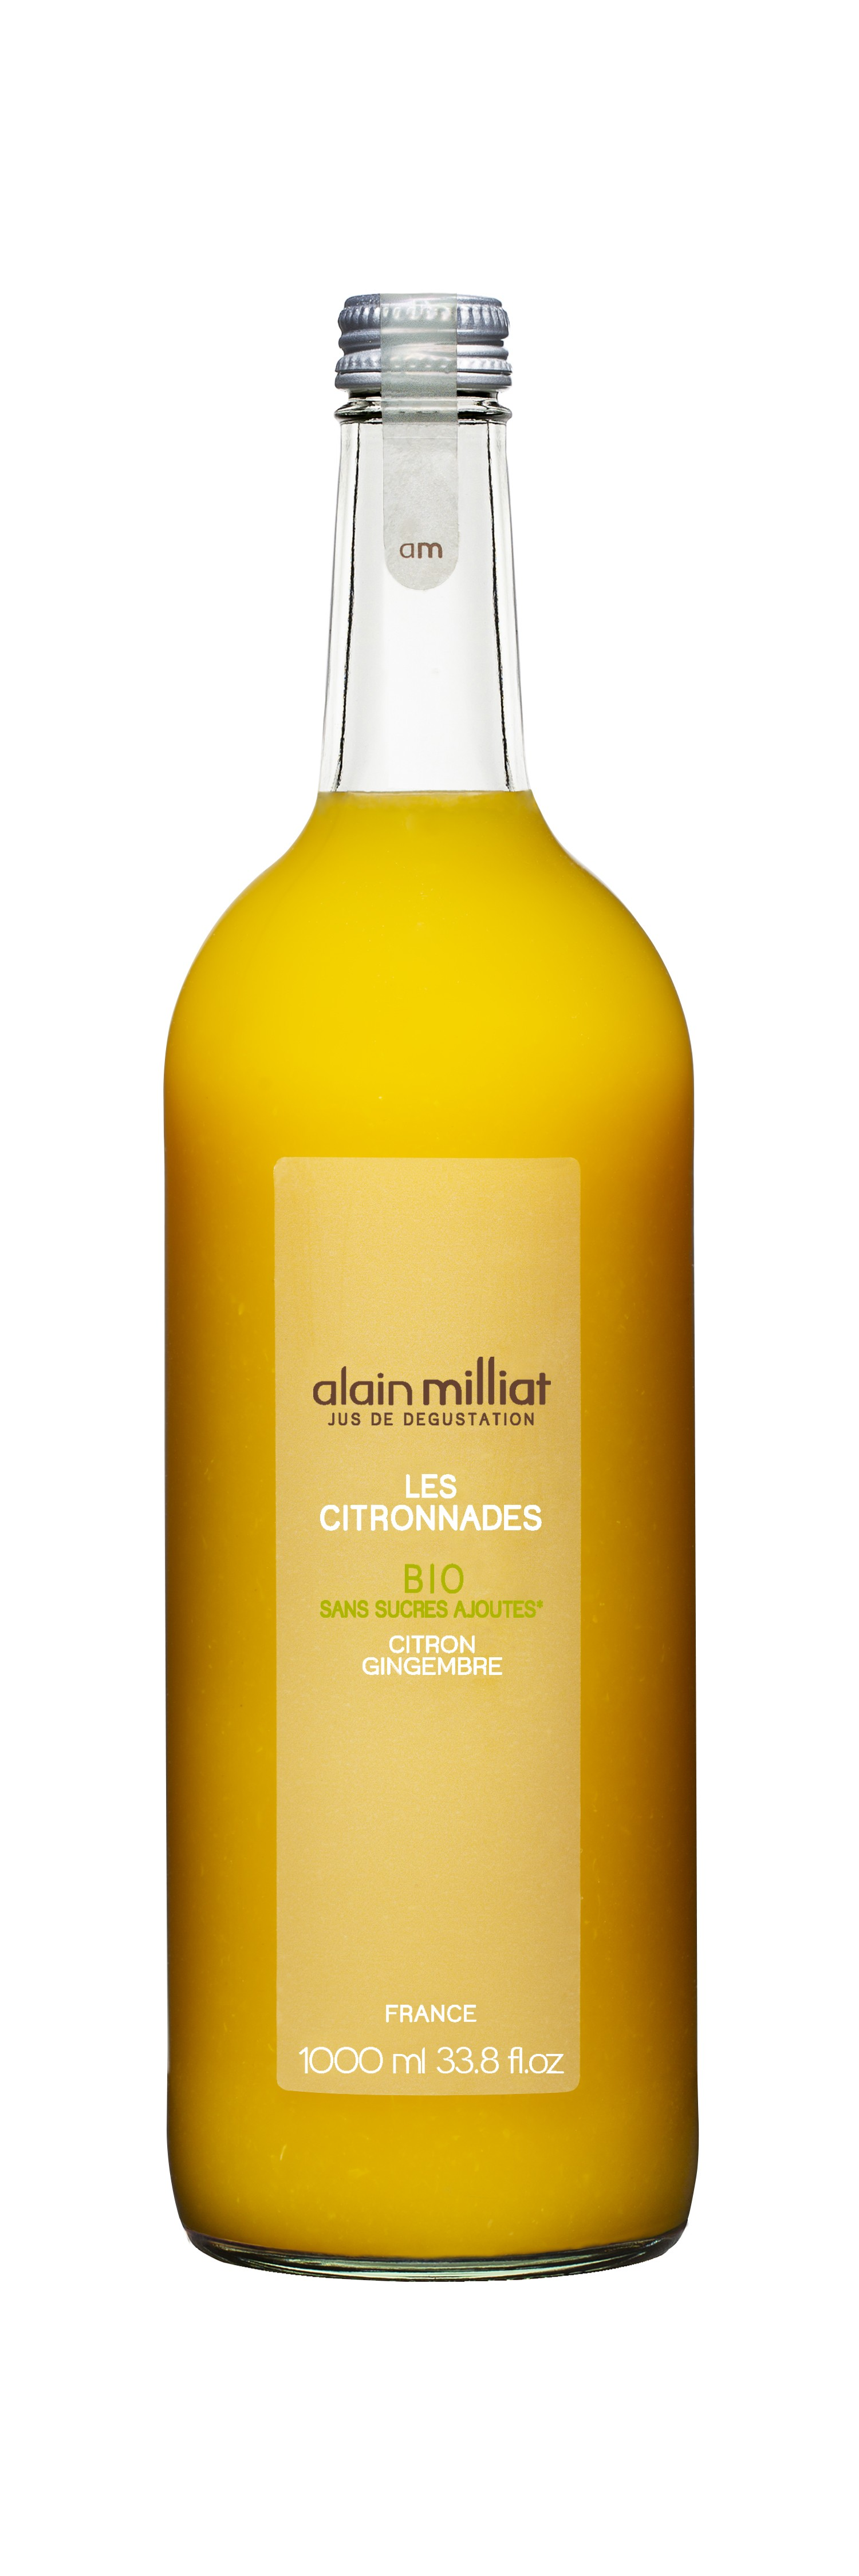 Citronnade Citron - Gingembre BIO, Alain Milliat (1 L)